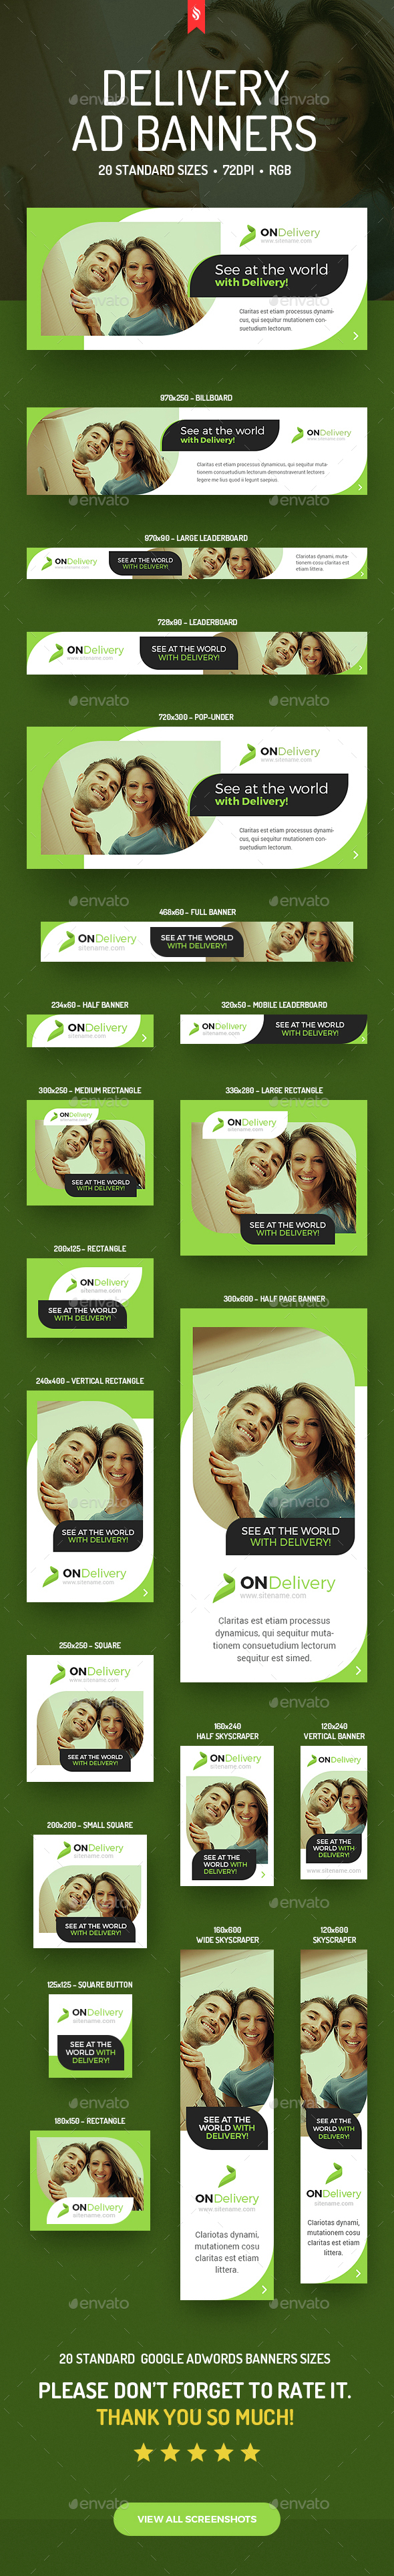 ONDelivery - Delivery Ad Banners Set - Banners & Ads Web Elements